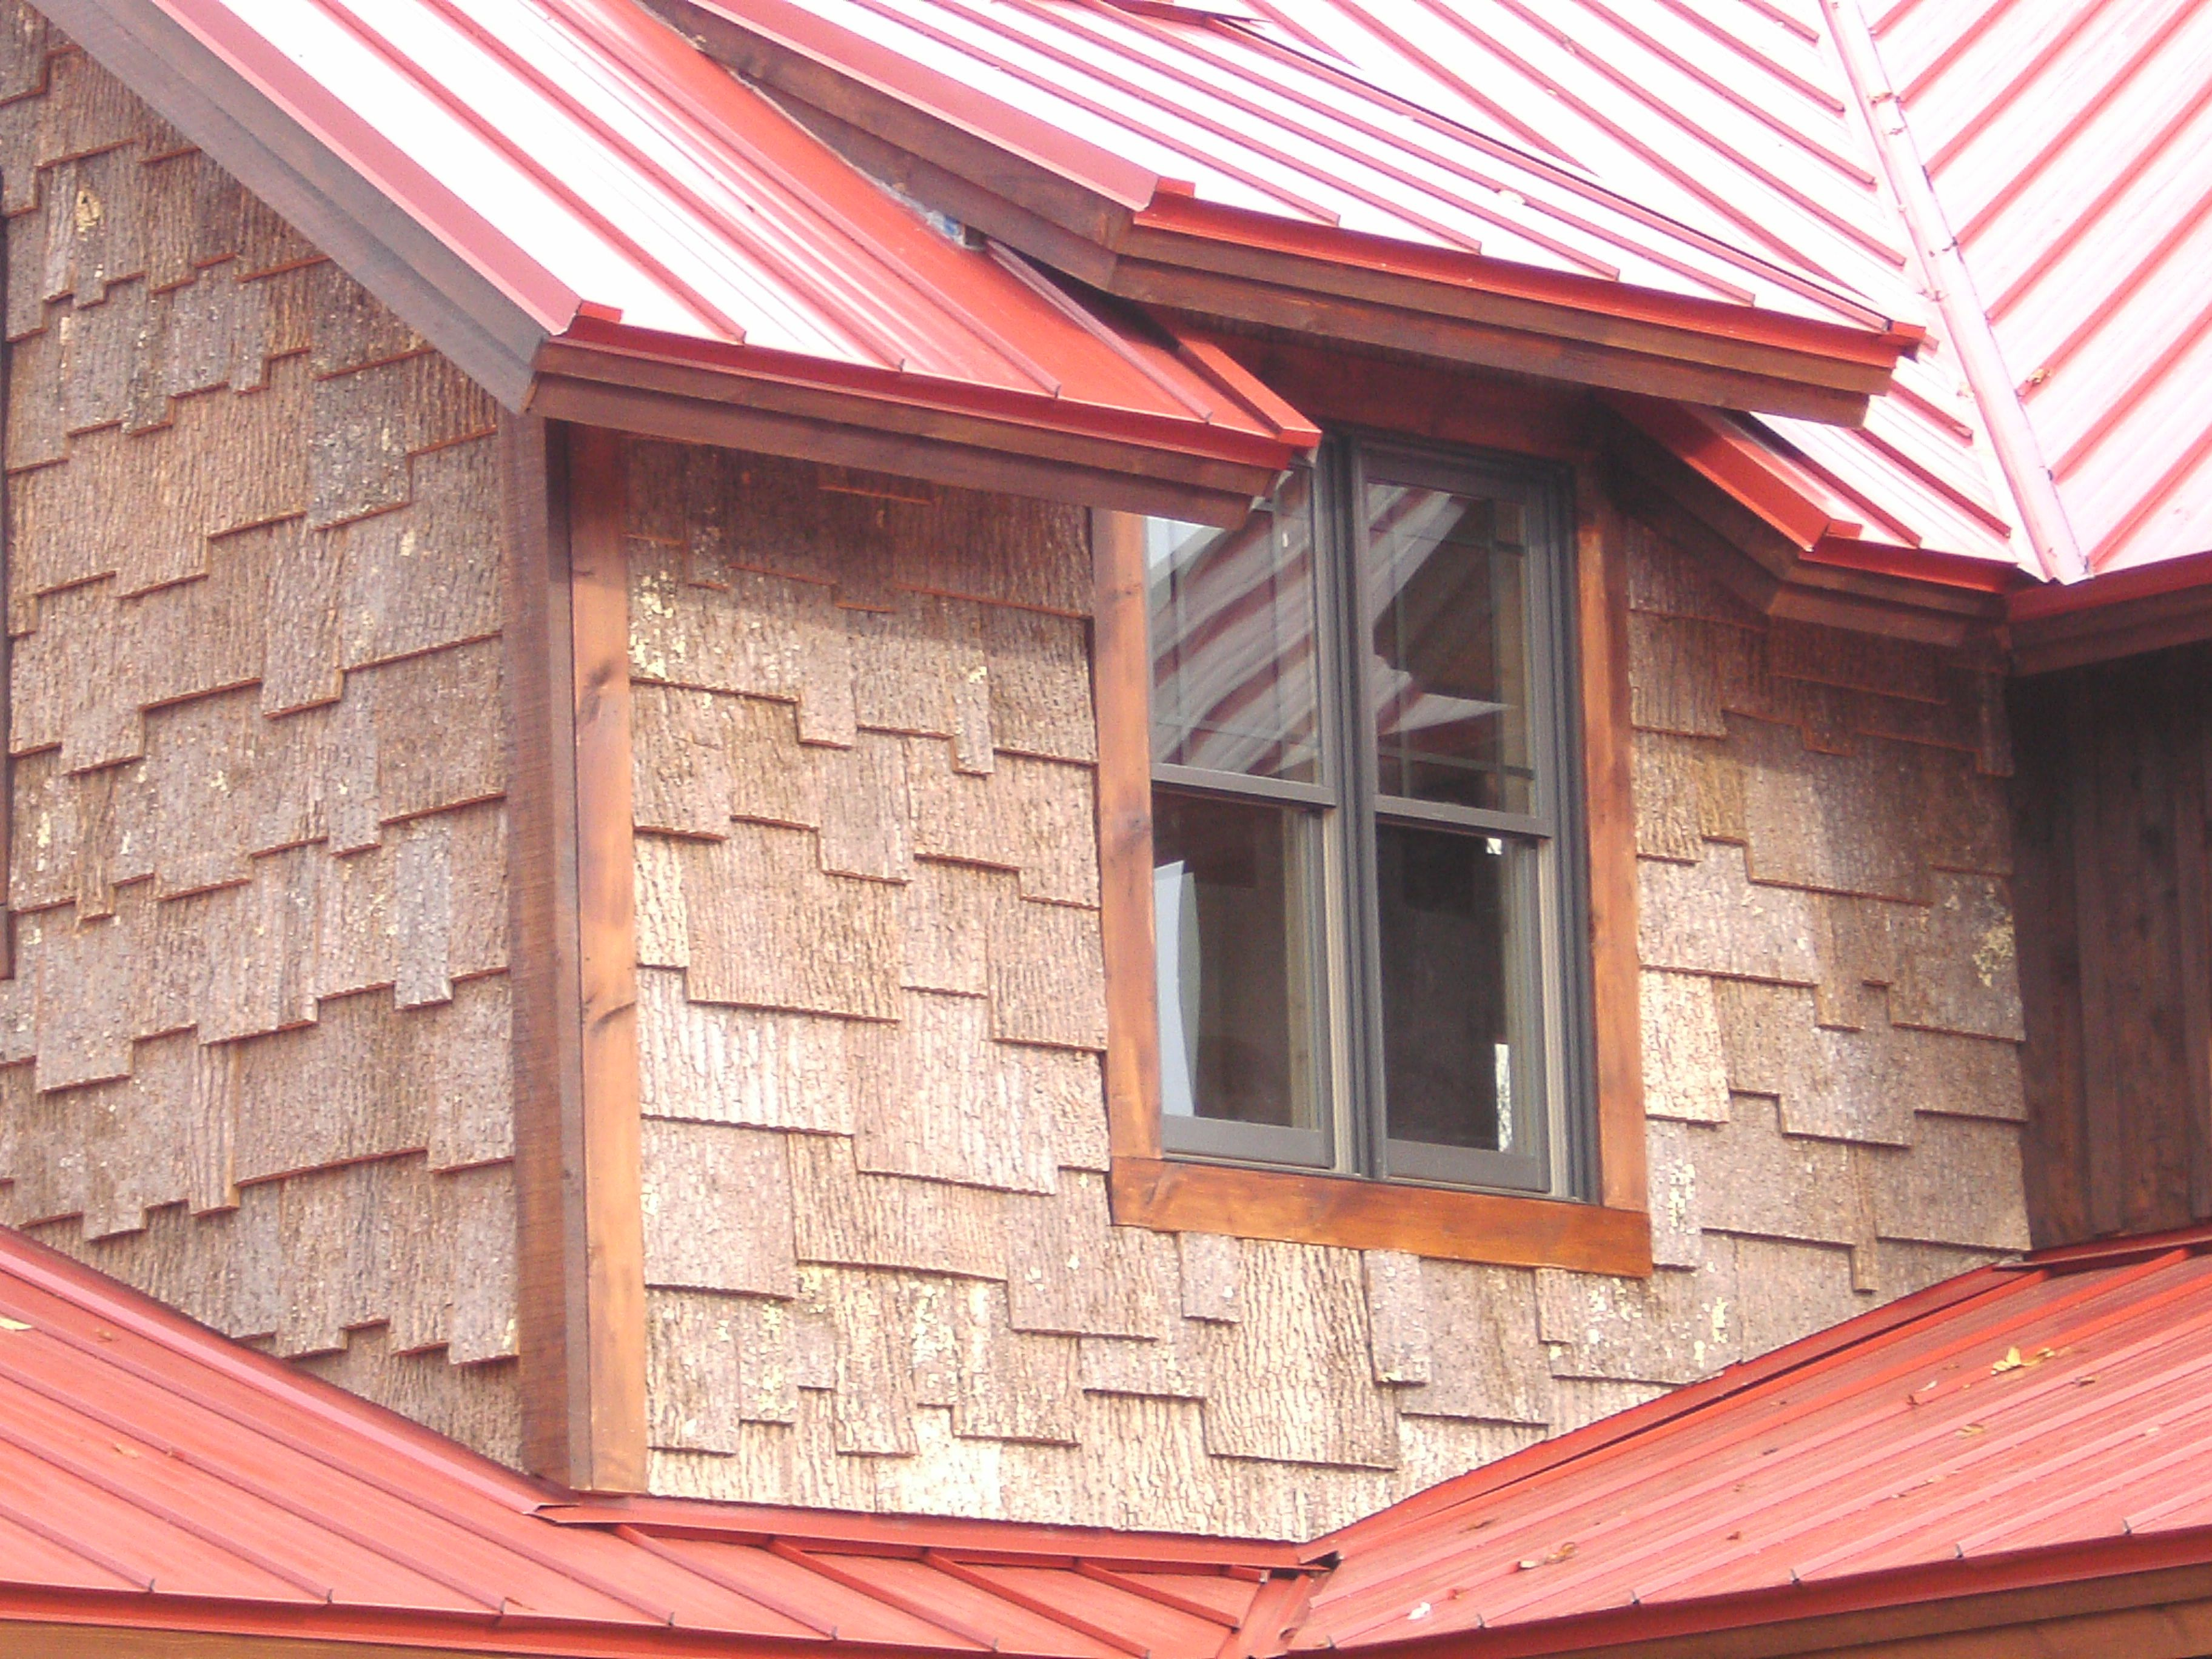 Popular bark in gable, also showing standing seam metal